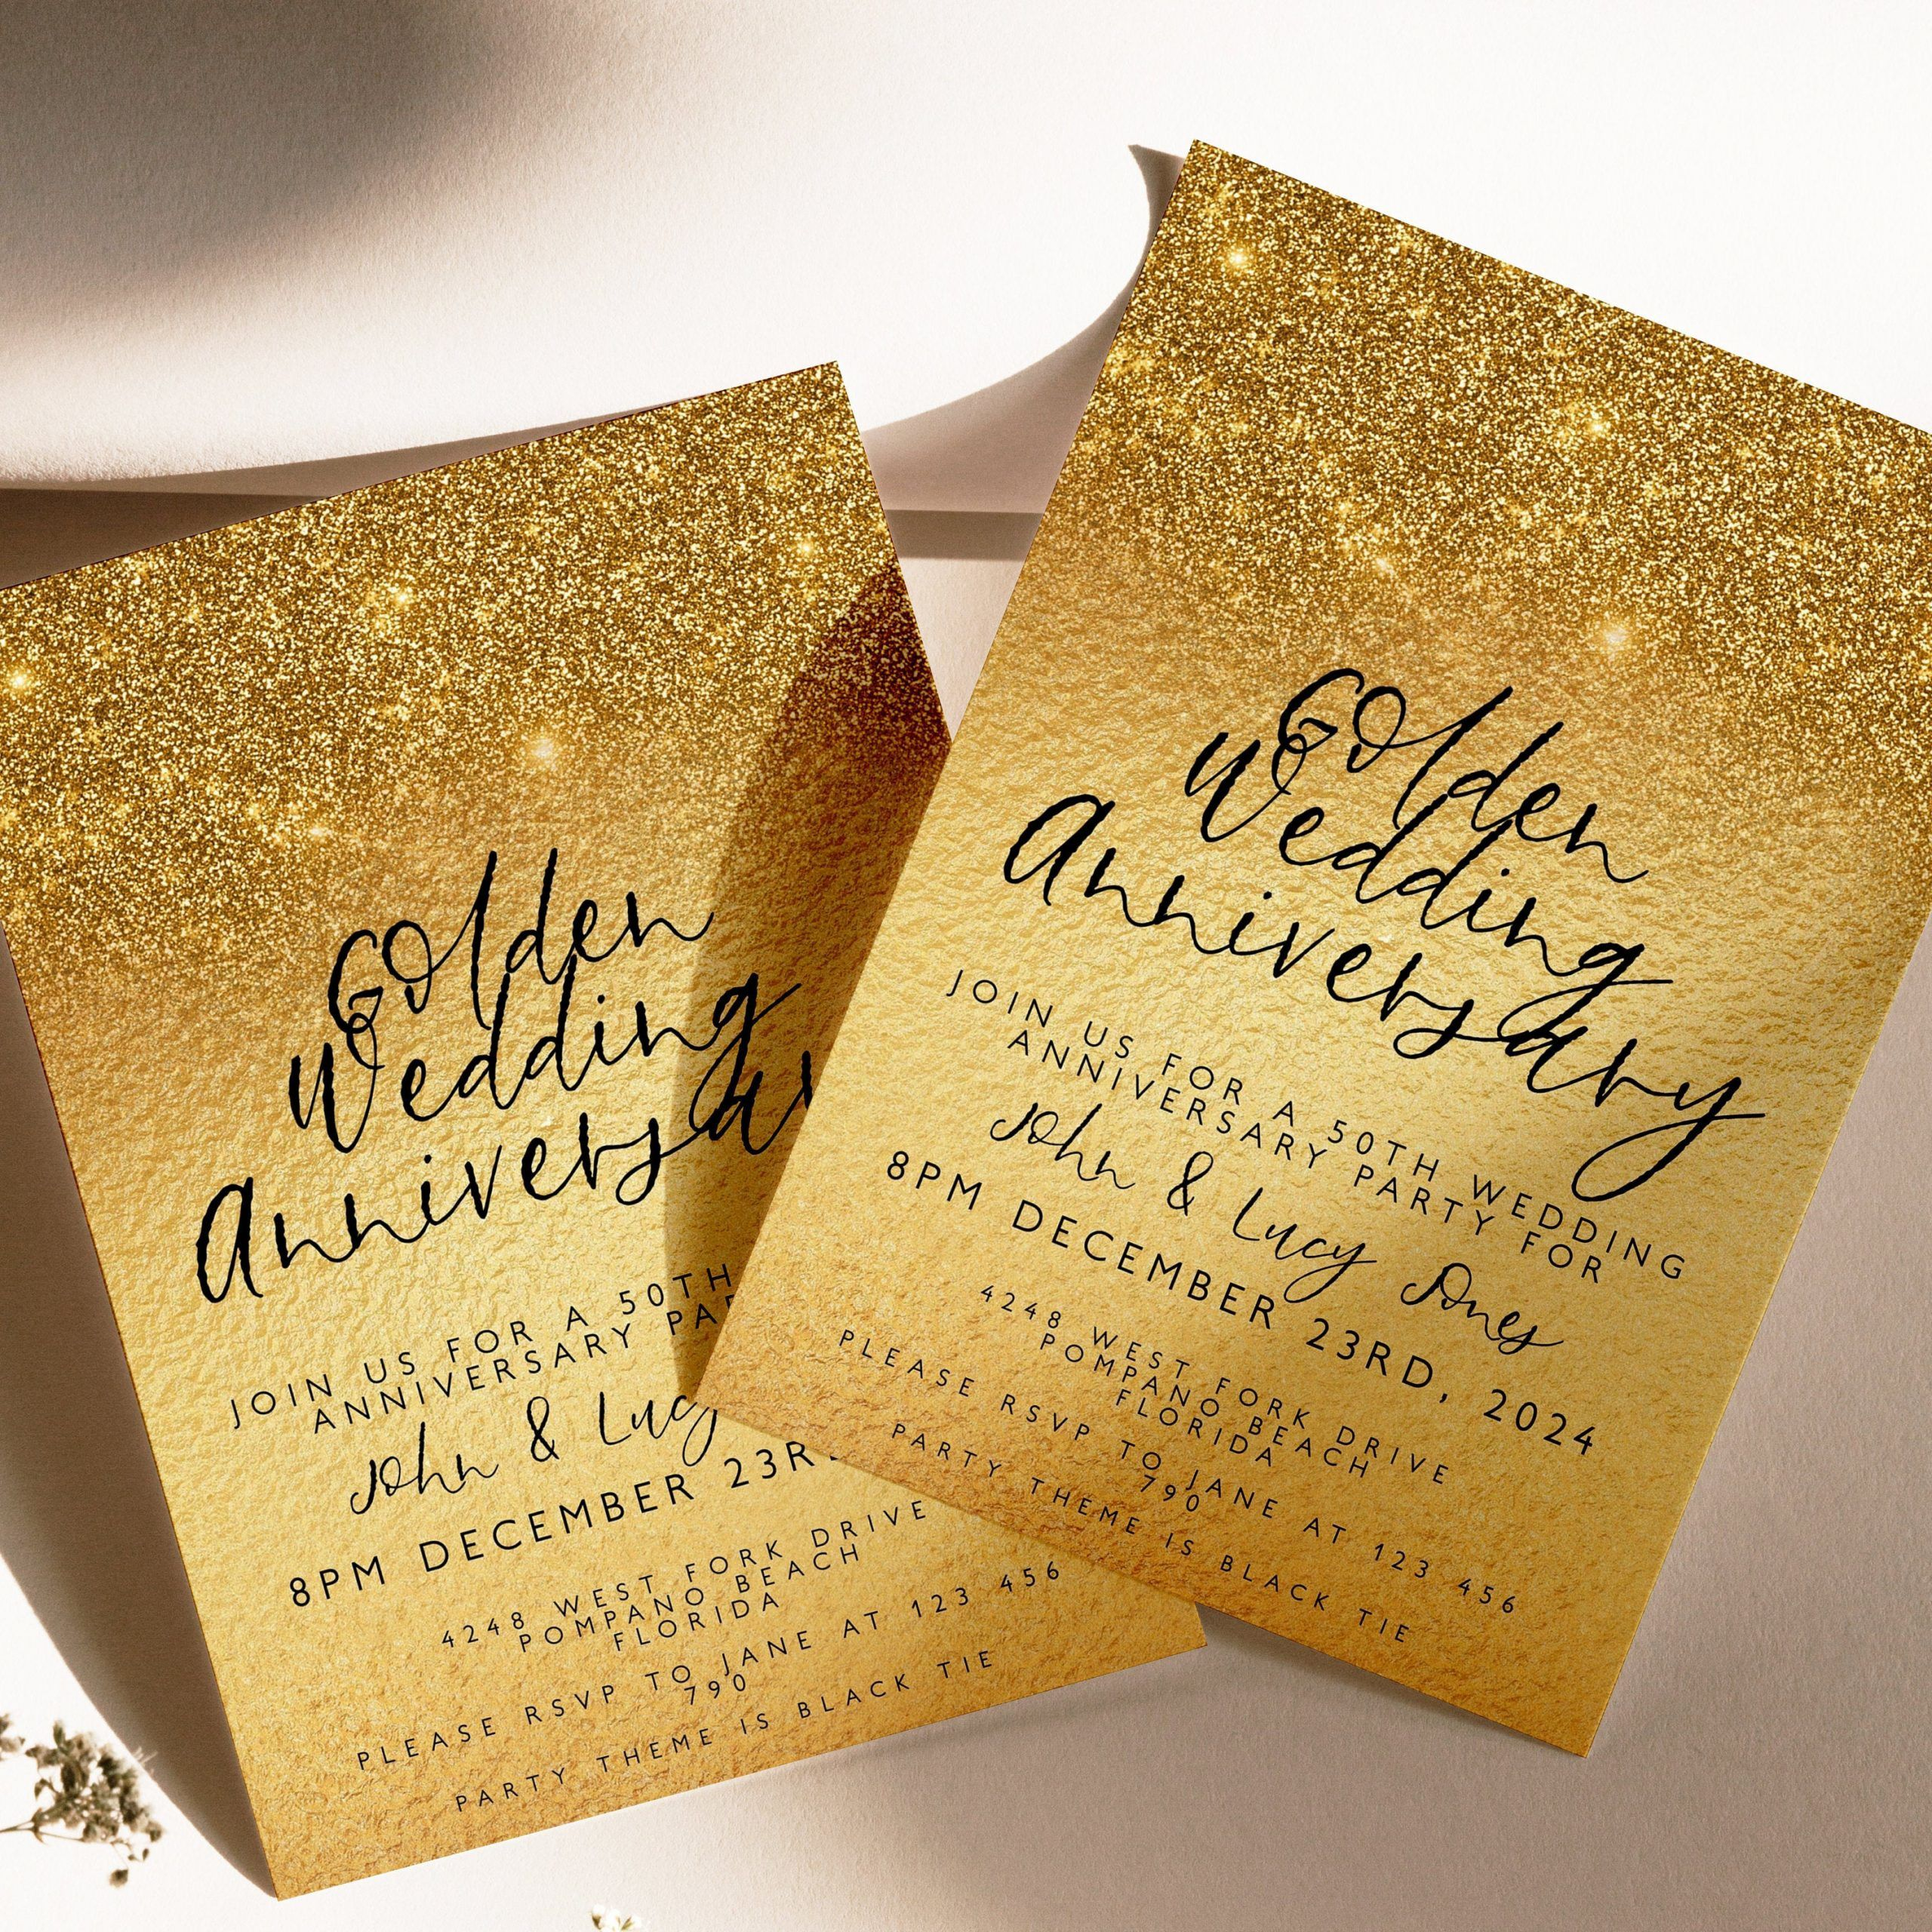 001 Excellent 50th Anniversary Invitation Template Image  Wedding Microsoft Word Free DownloadFull